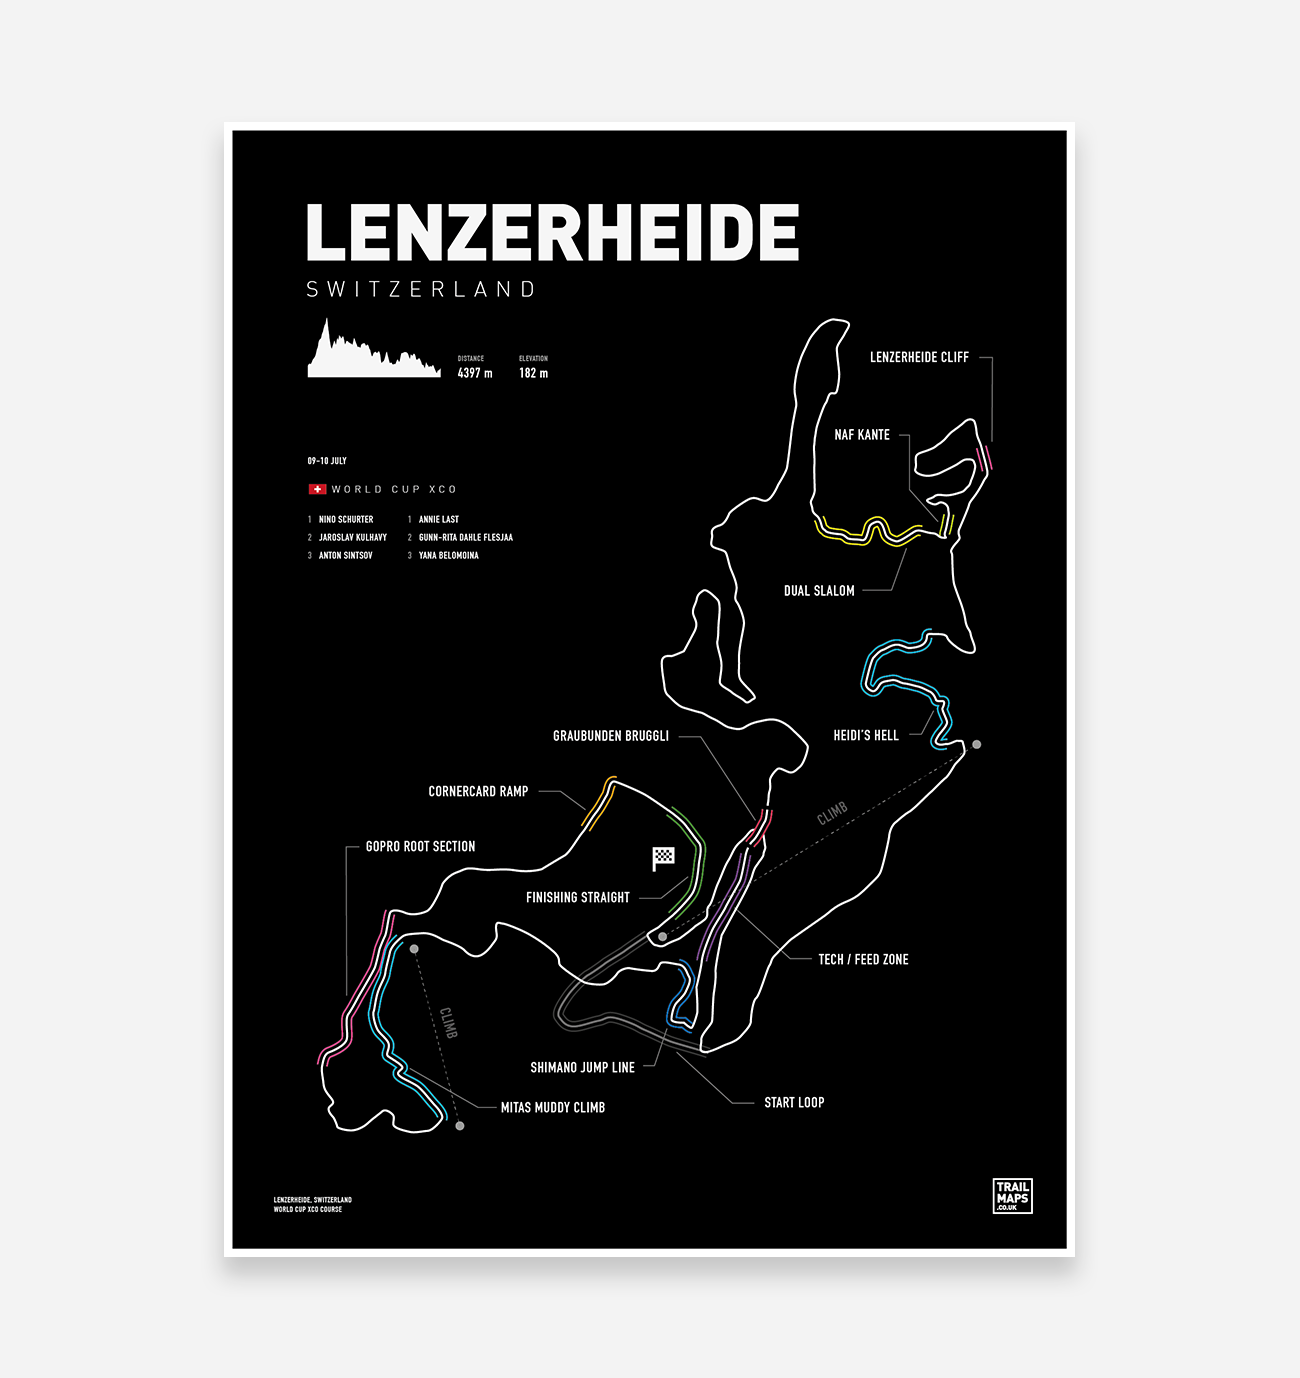 Lenzerheide World Cup XCO - TrailMaps.co.uk